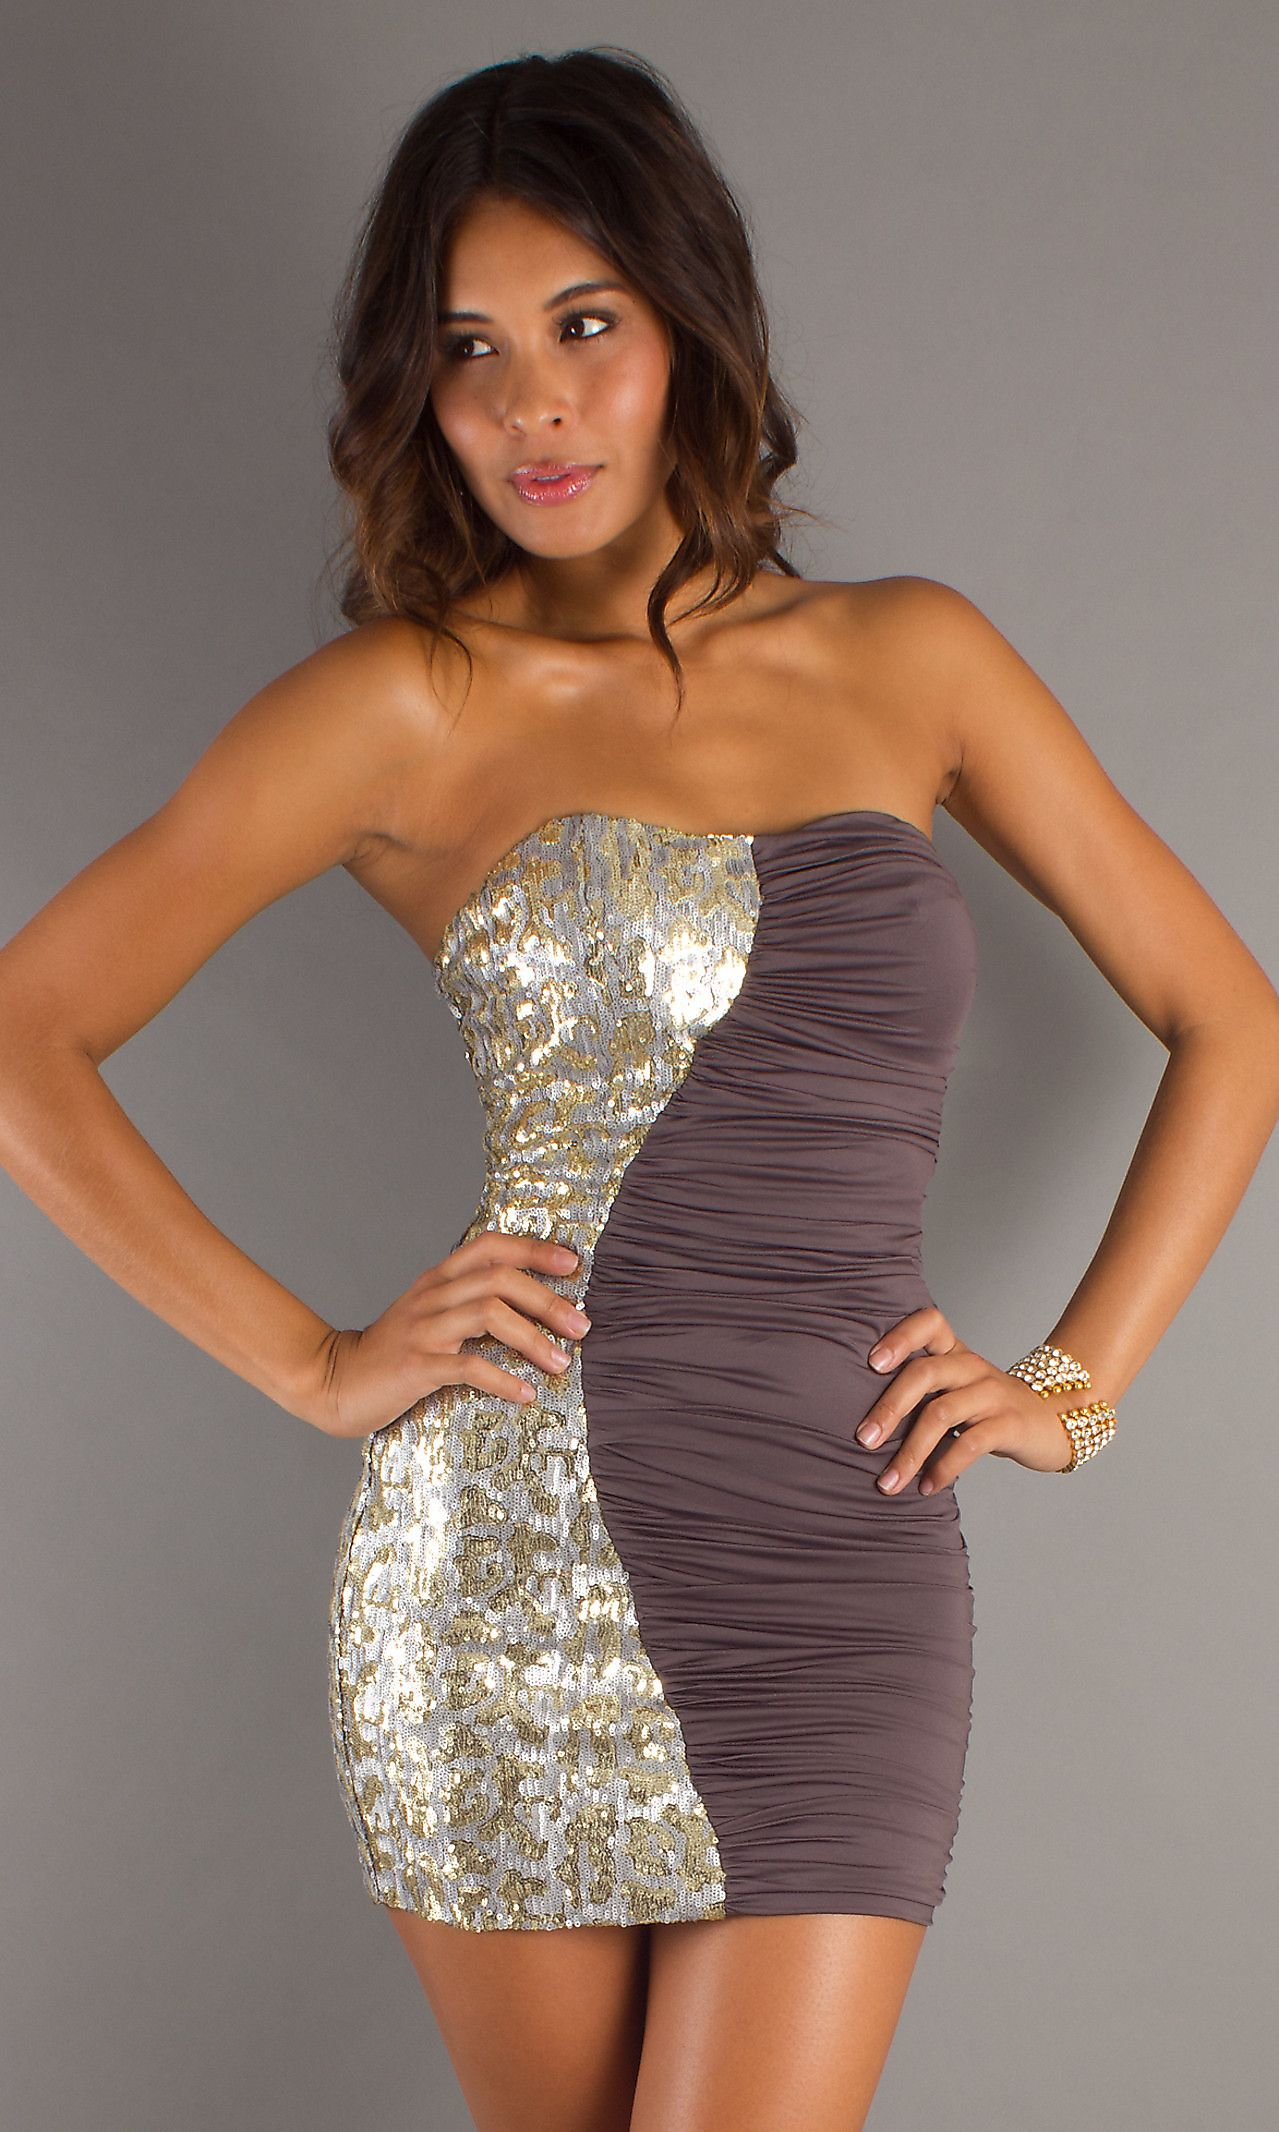 Strapless dress with sequins on one side and ruched fabric on the other